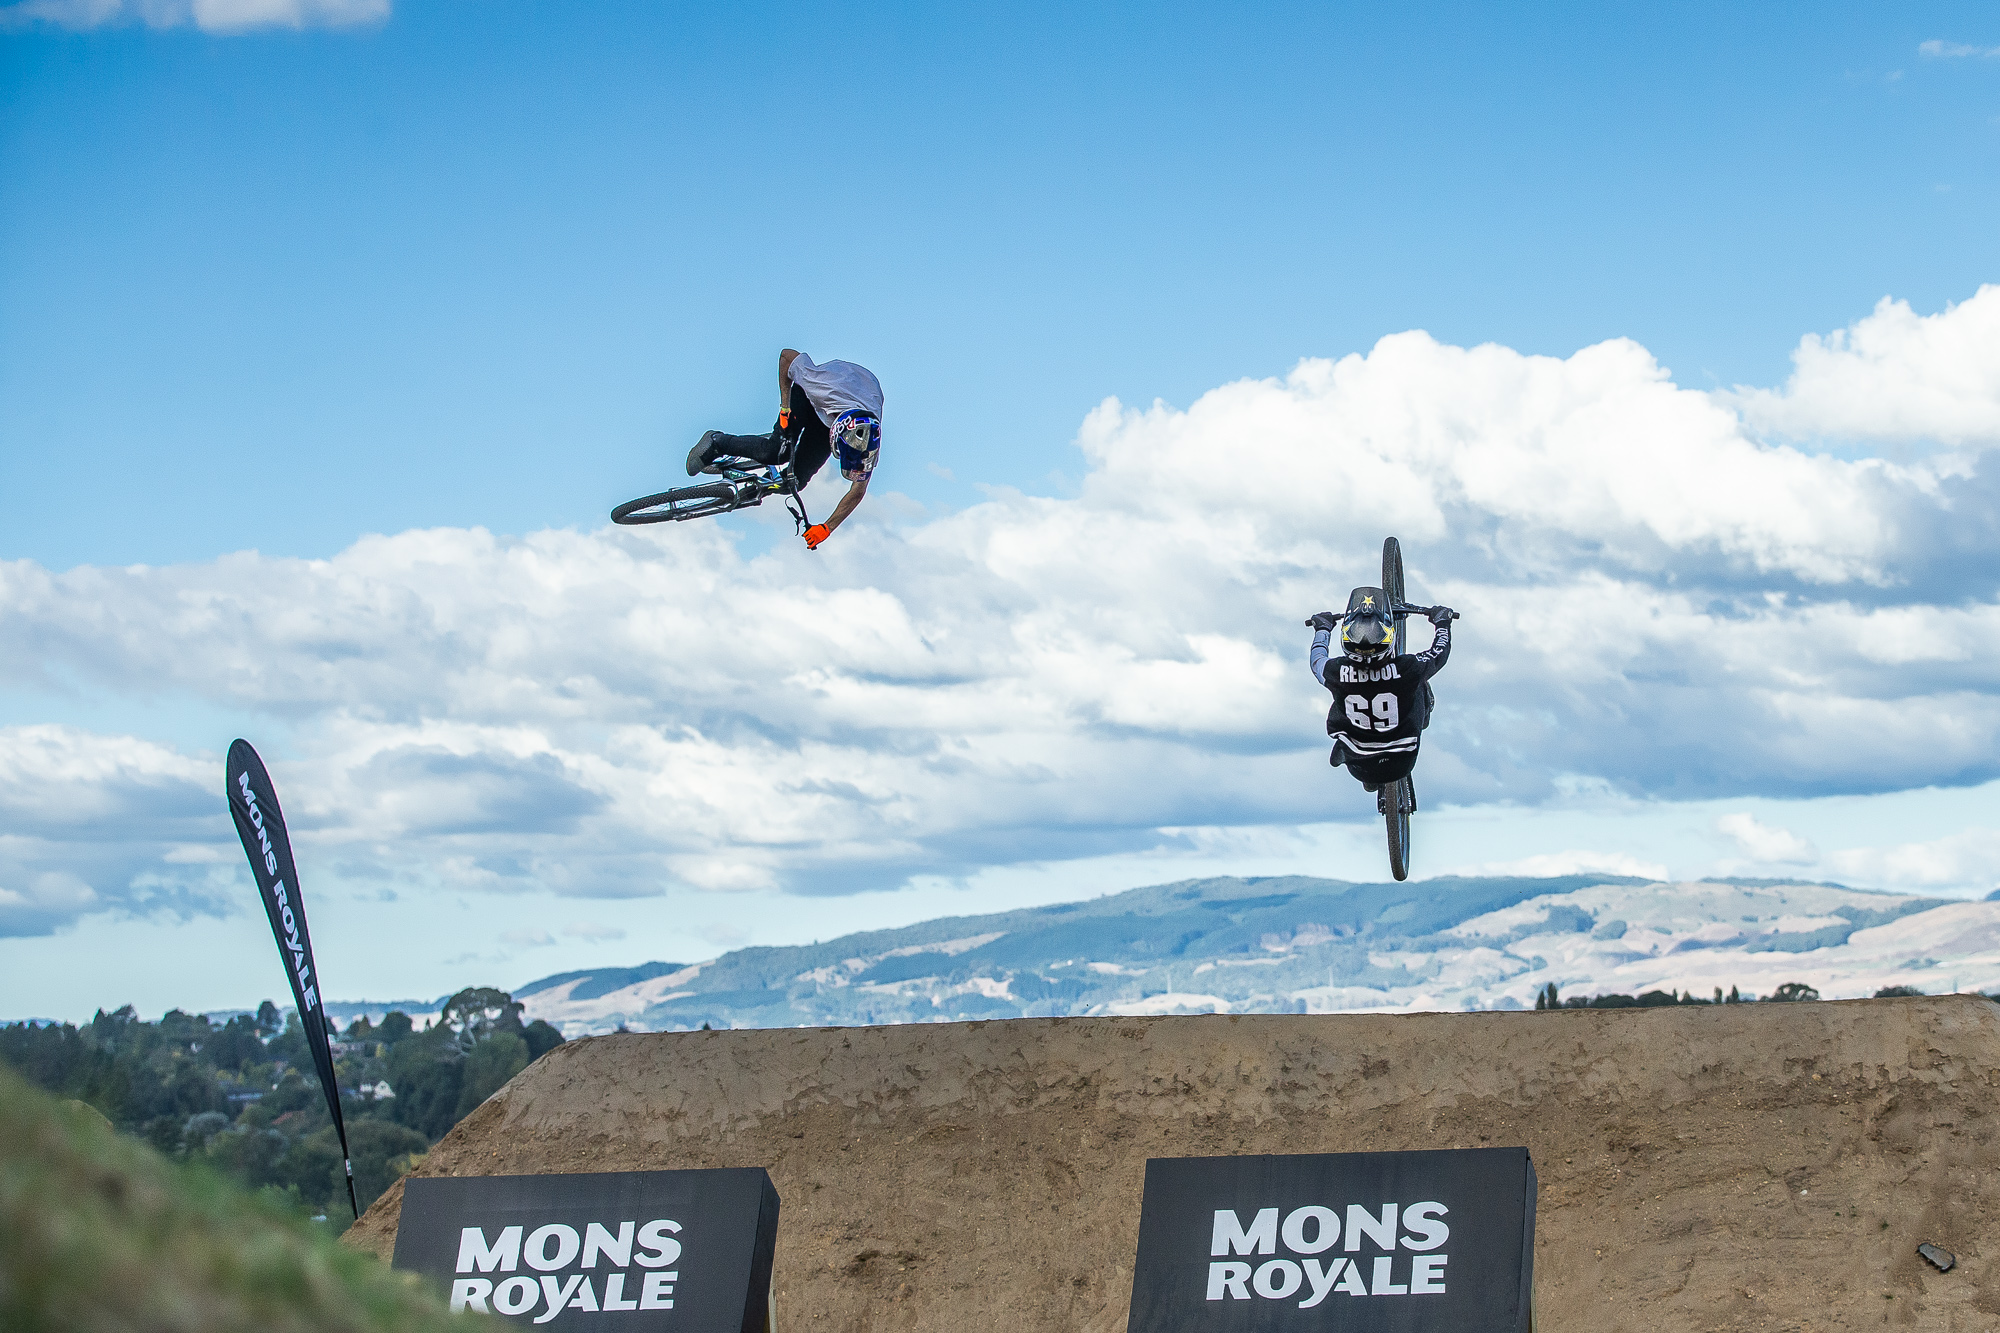 CLIF Speed & Style Rotorua presented by Mons Royale